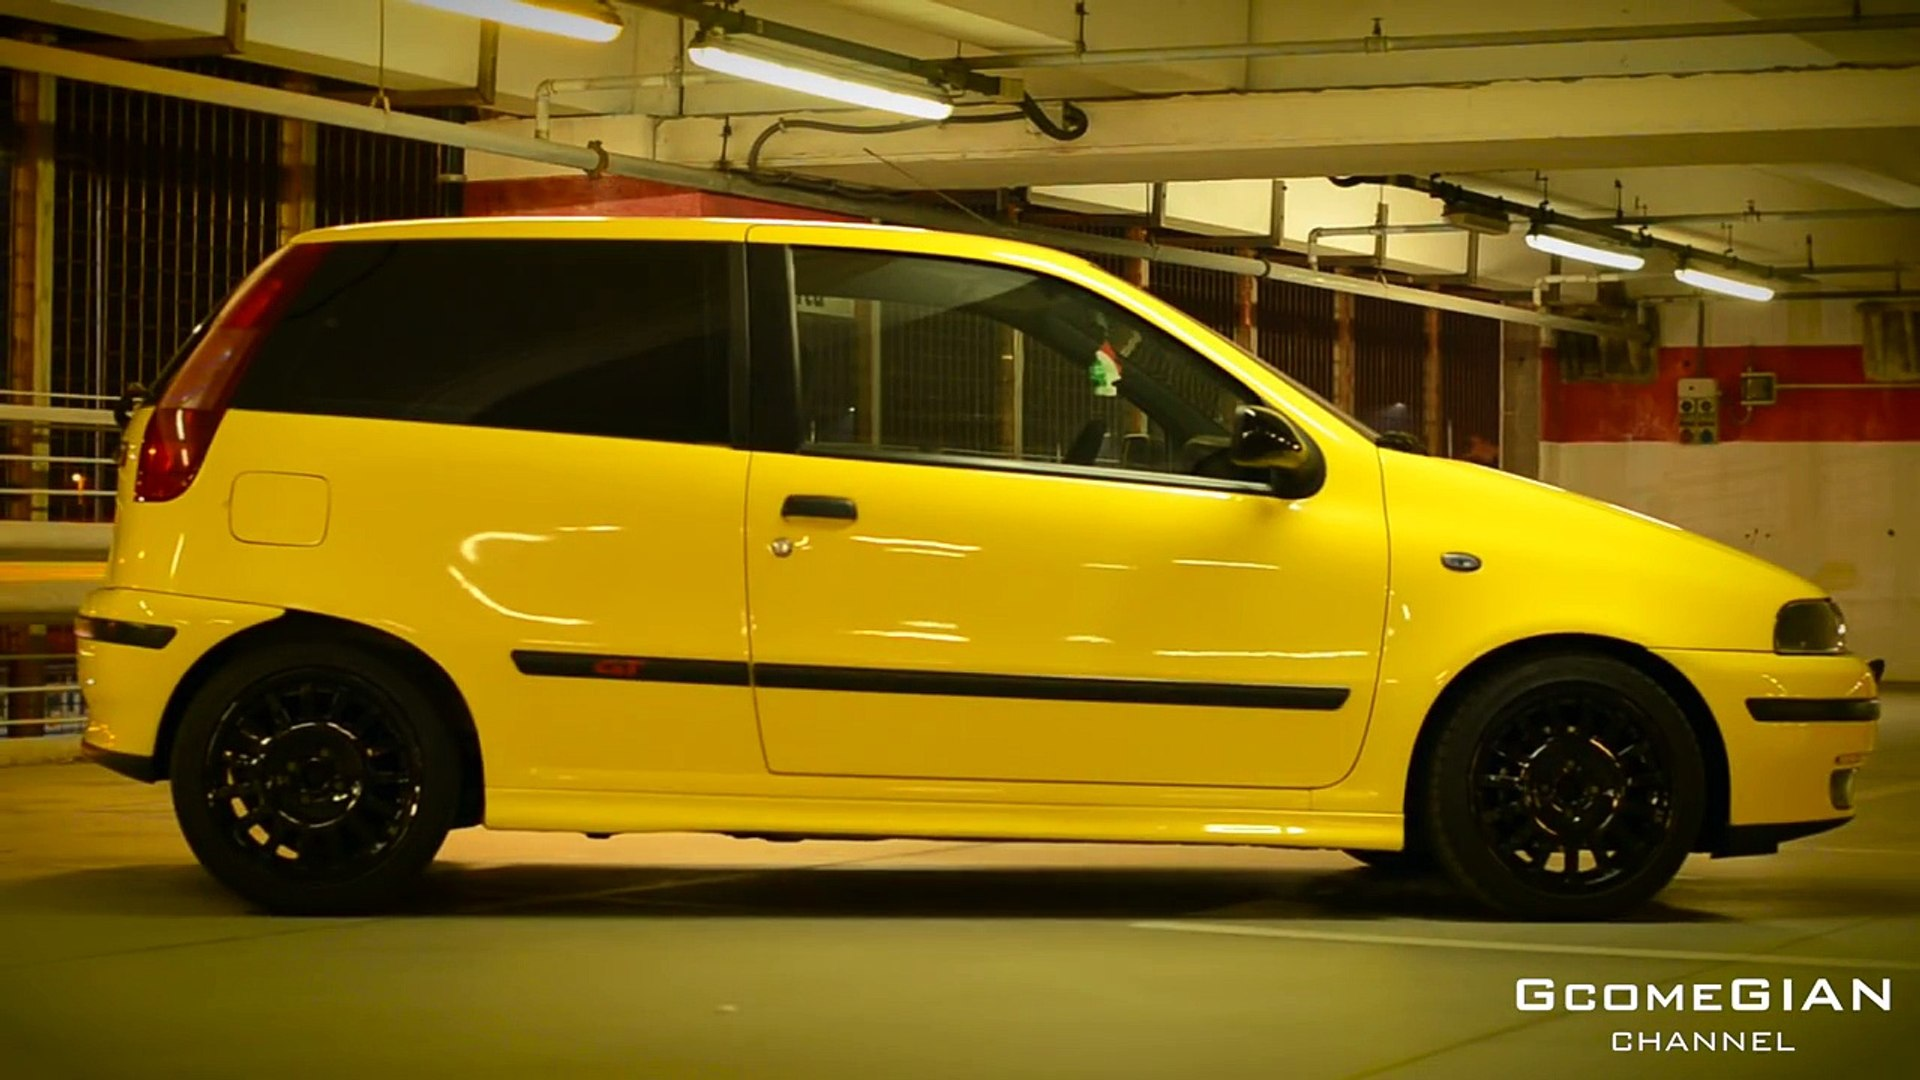 Fiat Punto Gt Turbo Acceleration Sound Exhaust Loud Pop Off Trailer Video Dailymotion